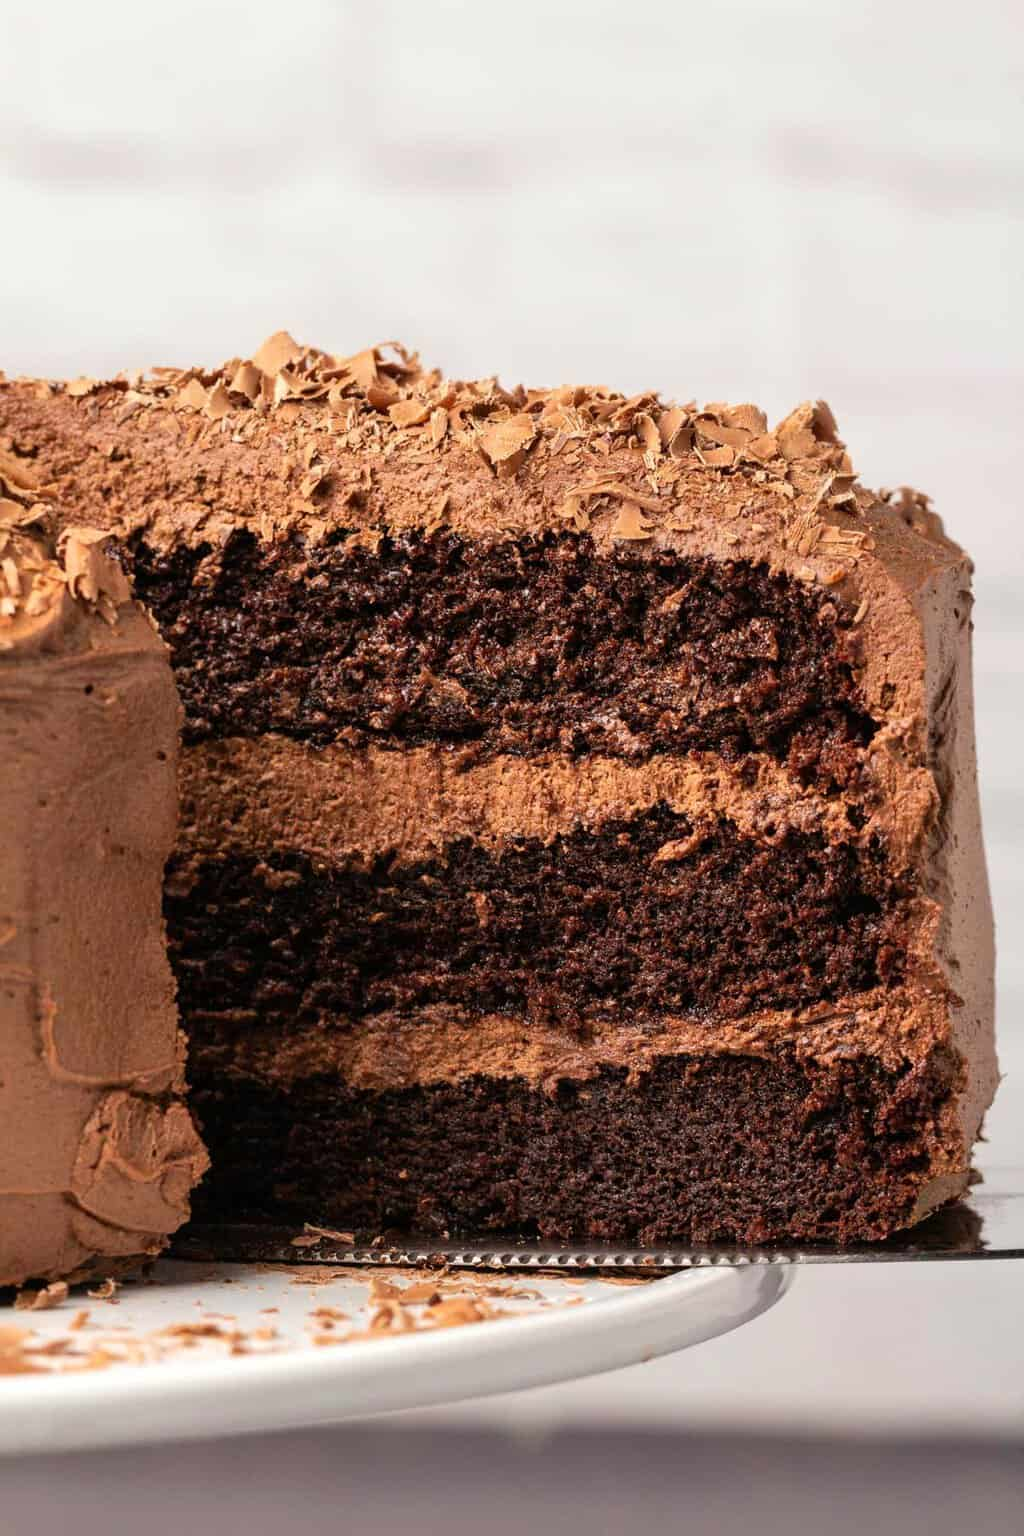 Dairy free chocolate cake